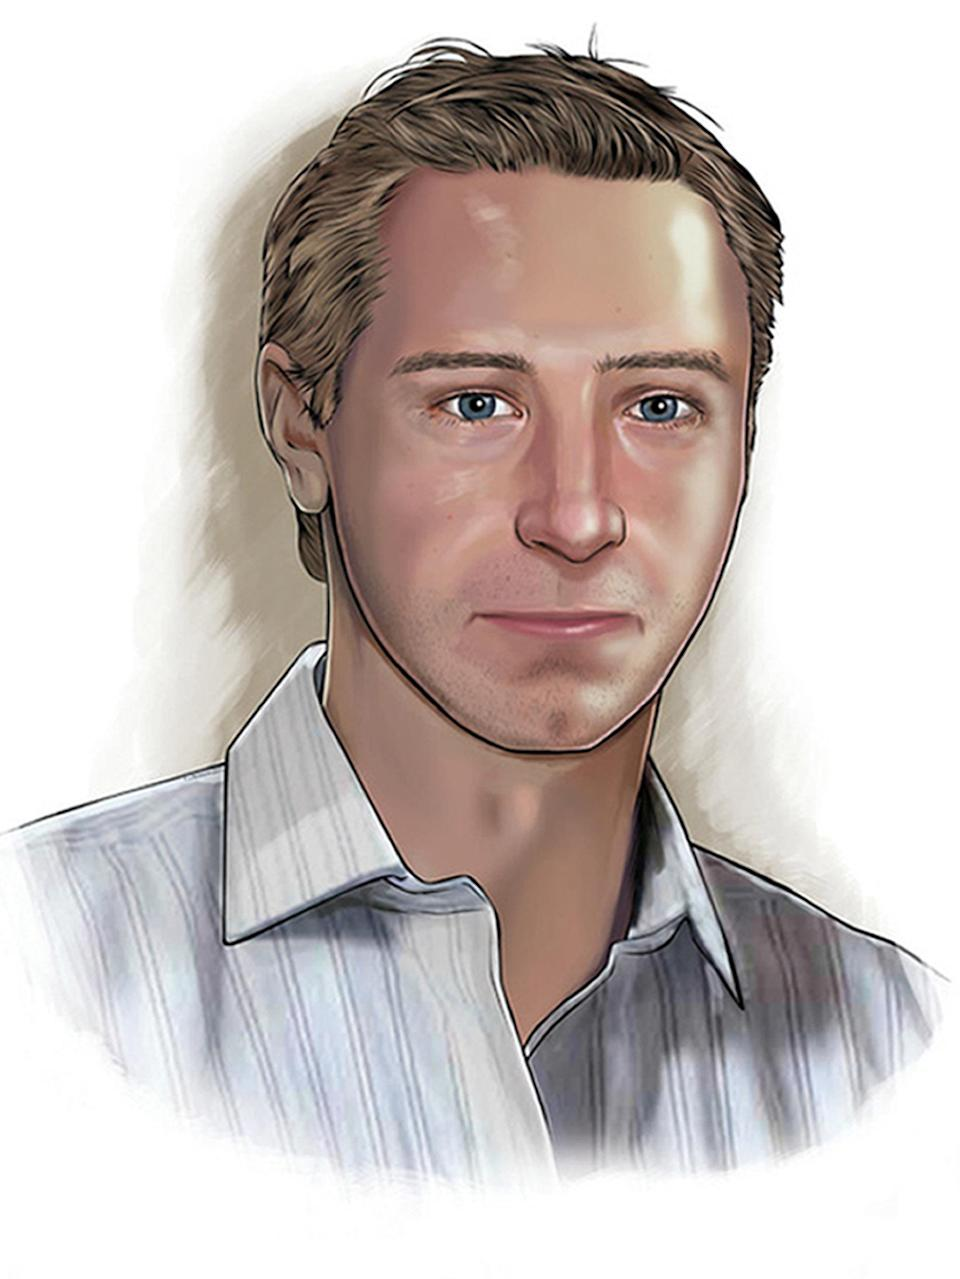 A digital portrait of how Ben may have looked in 2012